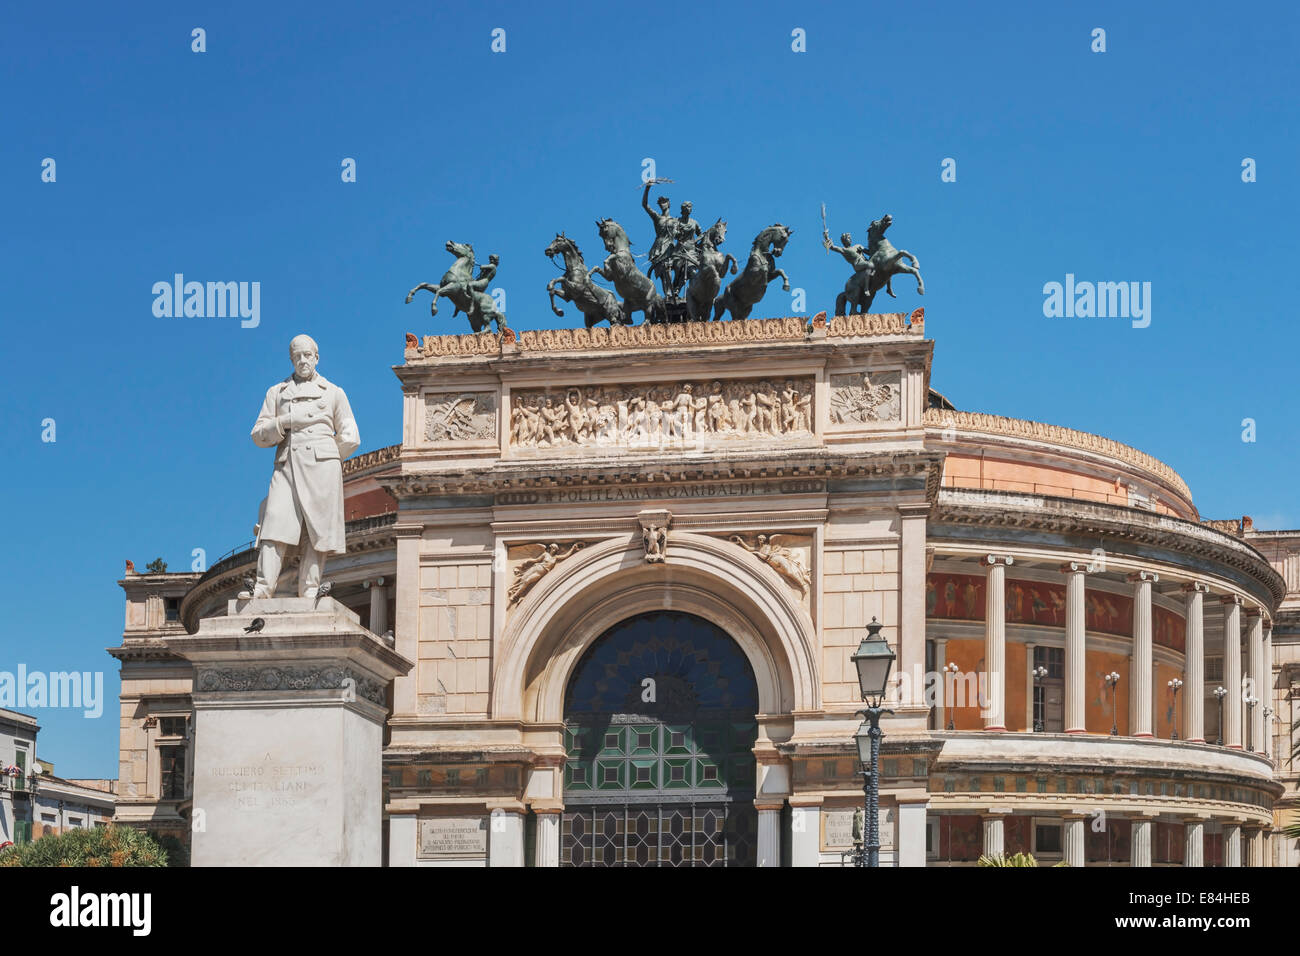 The Teatro Politeama Garibaldi is a theater building in Palermo, Sicily, Italy, Europe Stock Photo